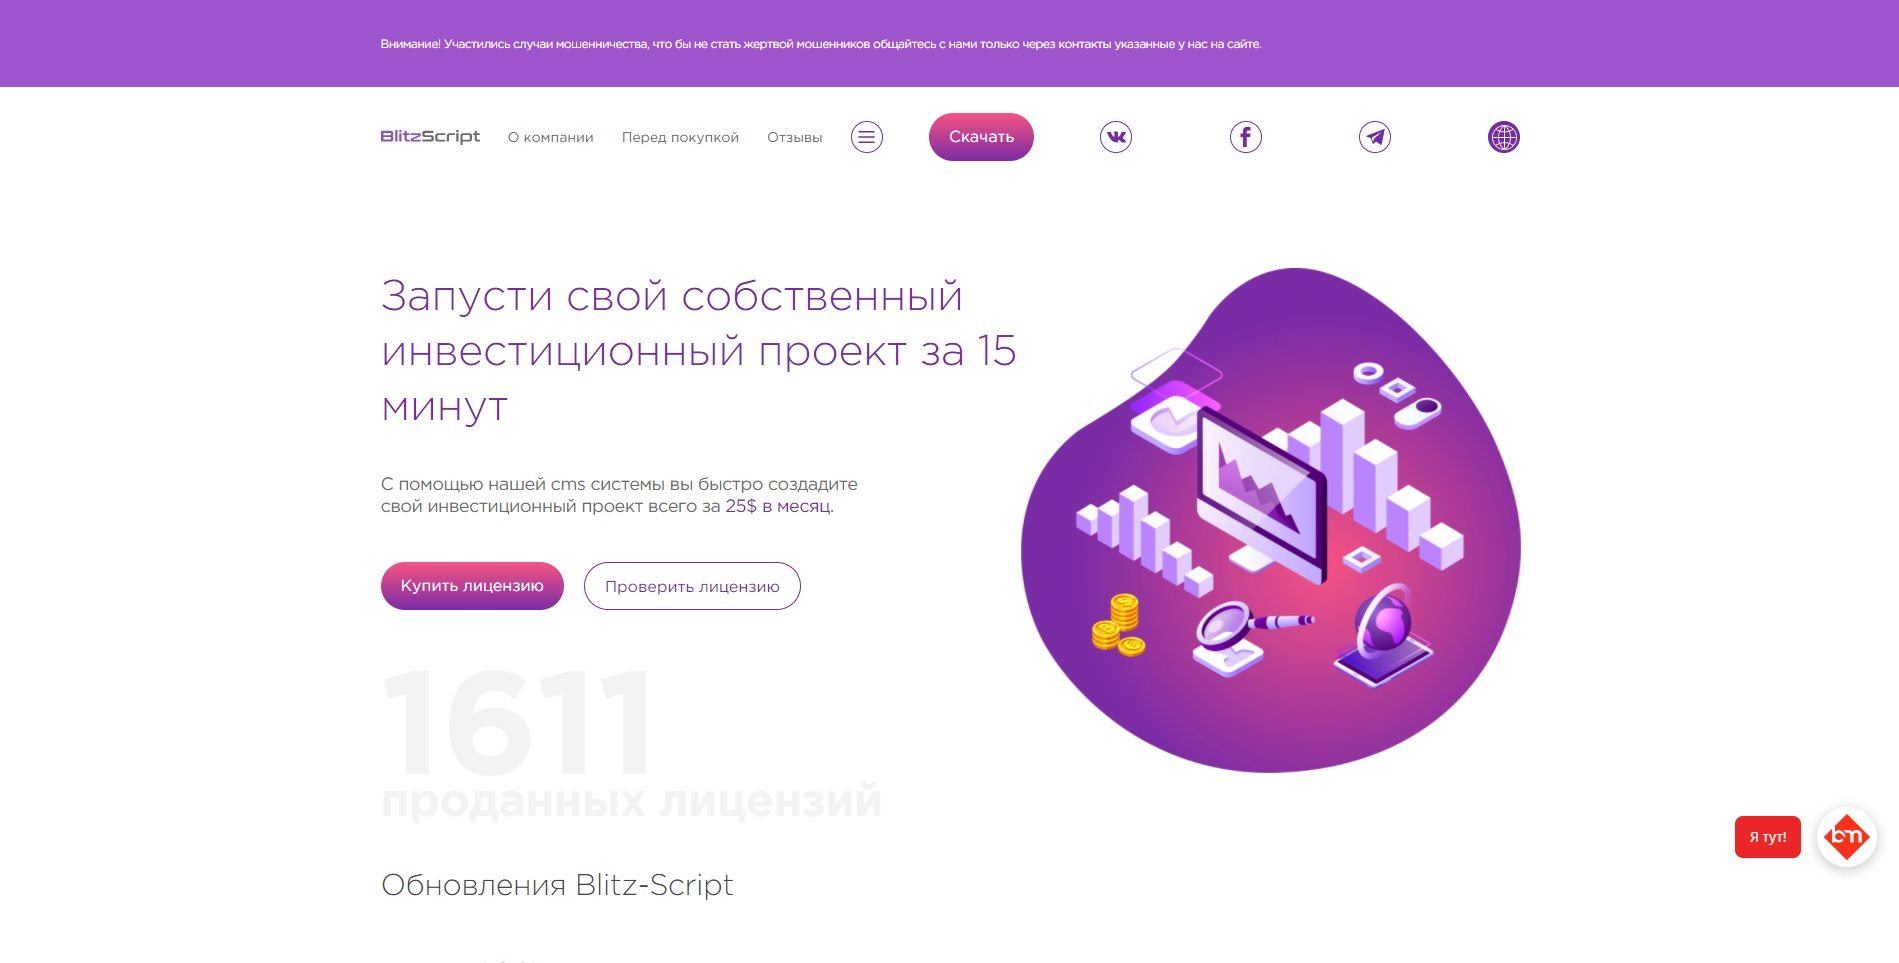 Blitz-script.com - Review and feedback on CMS for creating a HYIP project